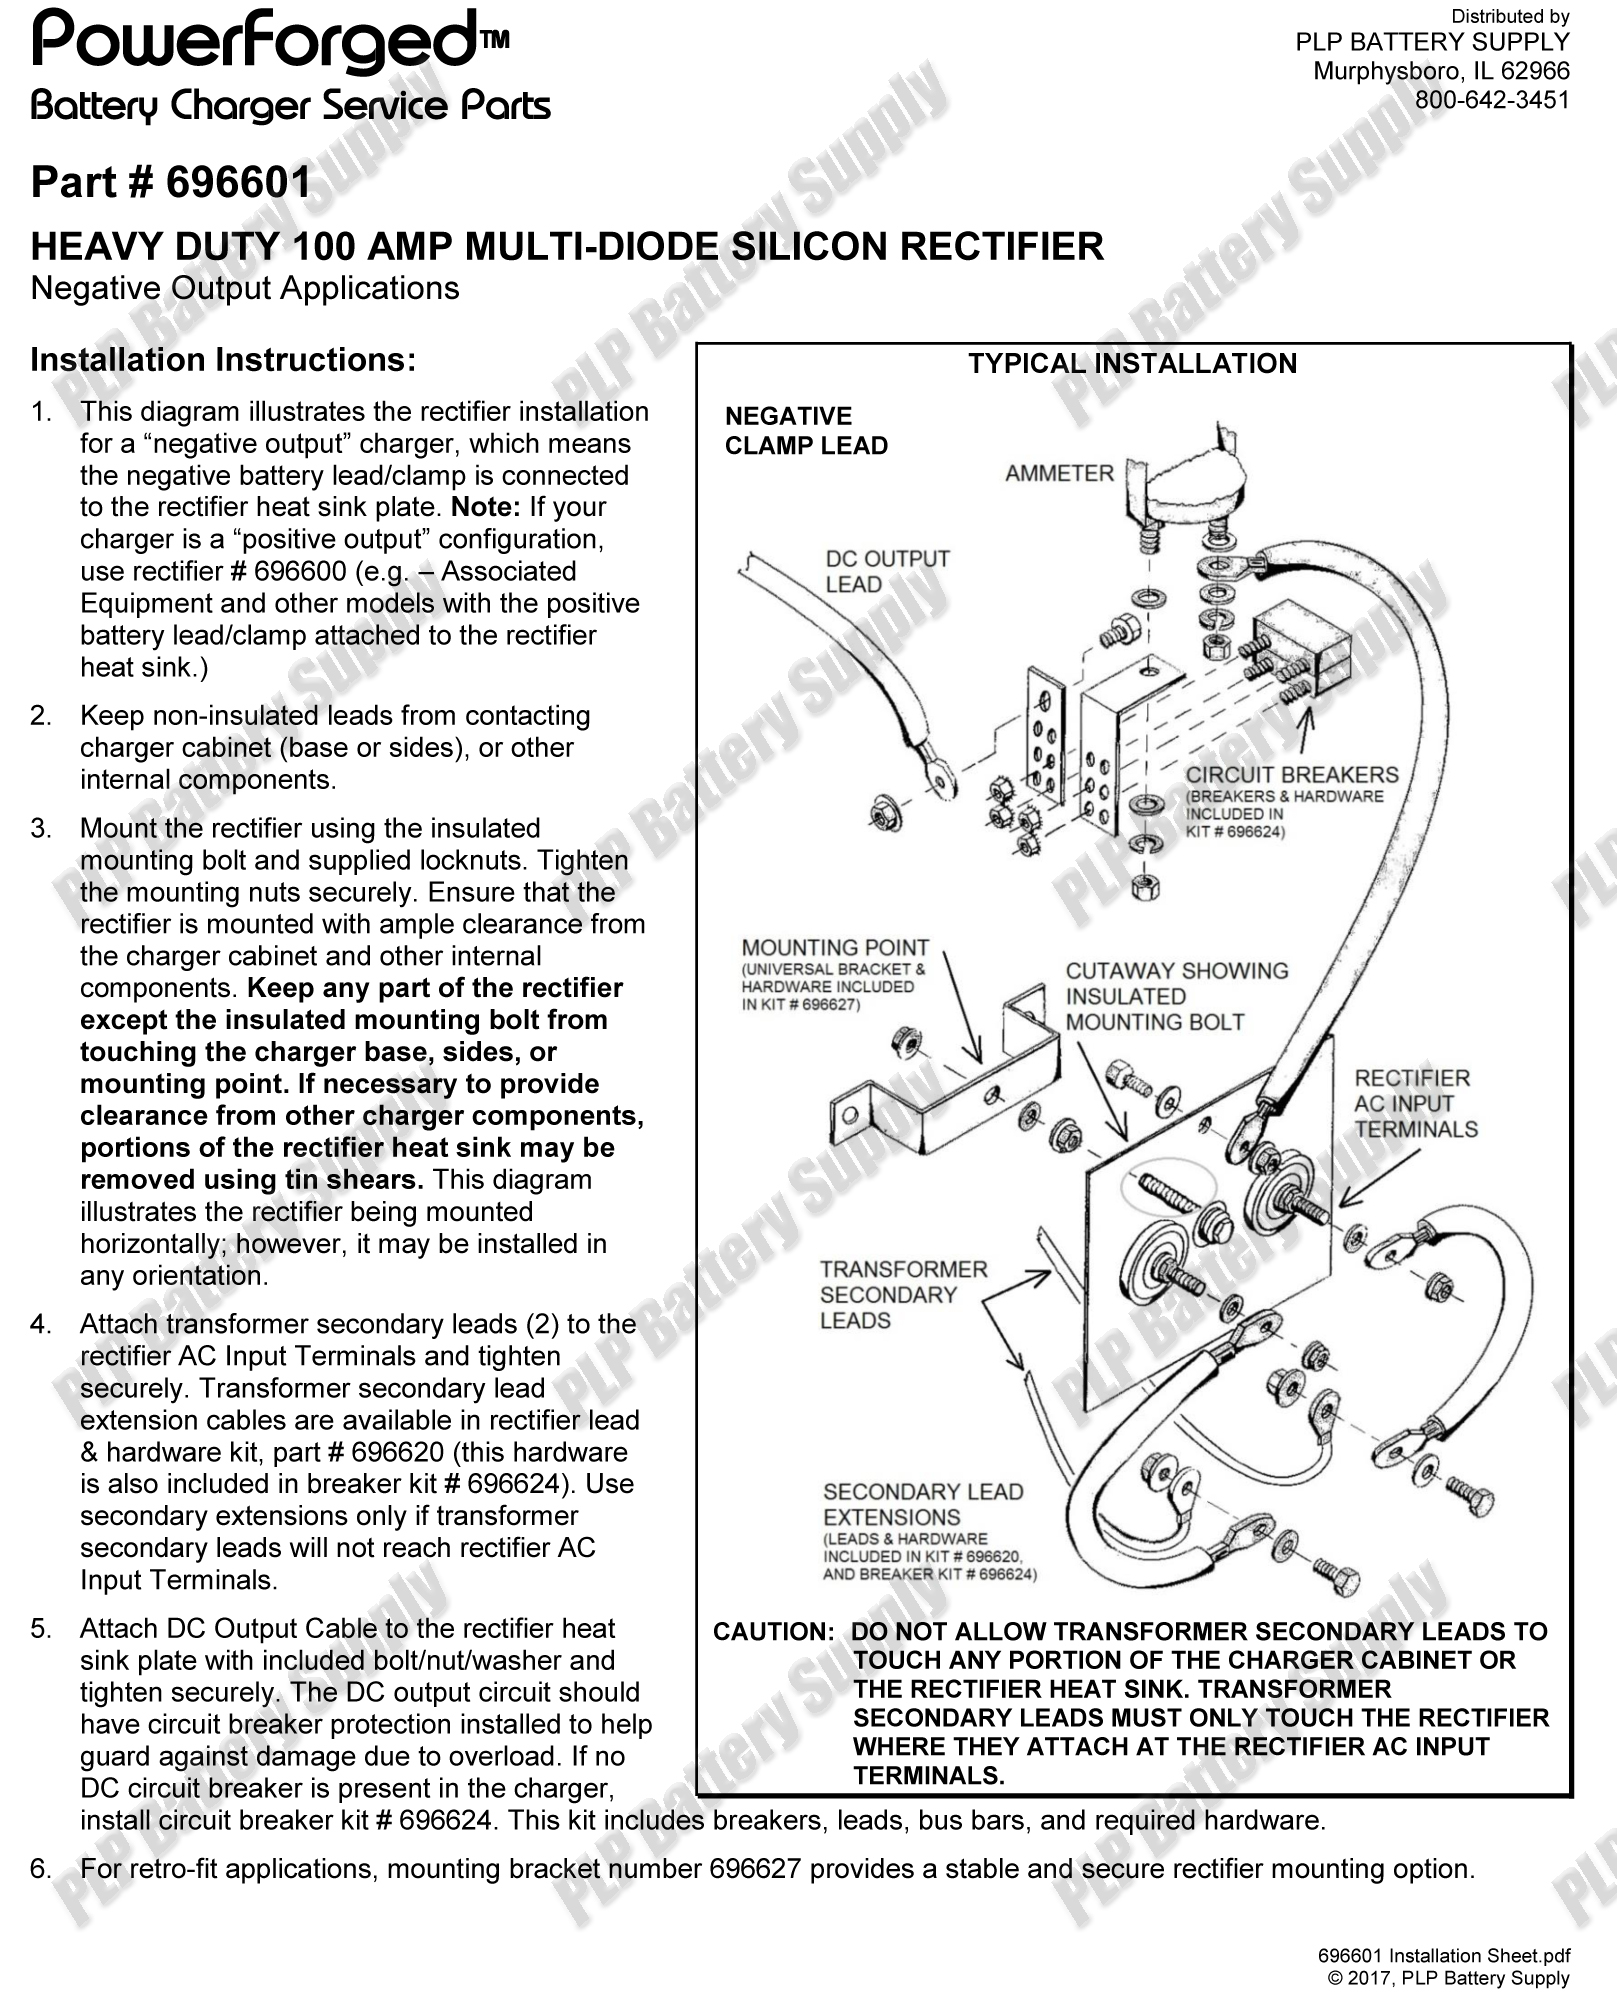 Magnum Lift Wiring Diagram Trusted Diagrams Electric Eagle Boom Smart U2022 Gate